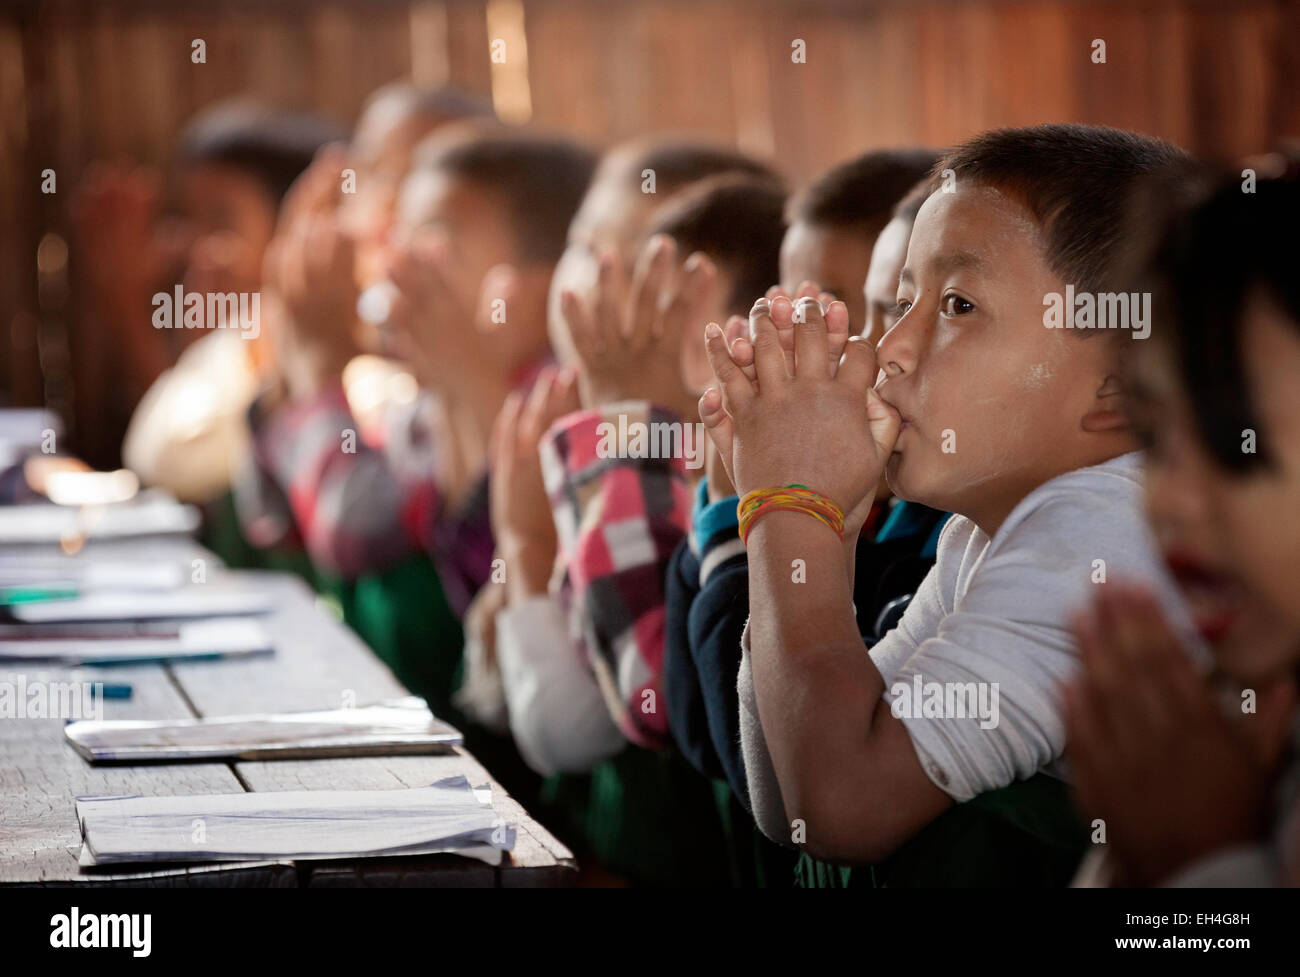 School children praying in their classroom at the start of the school day, Kar Lar village school, Inle Lake, Myanmar - Stock Image